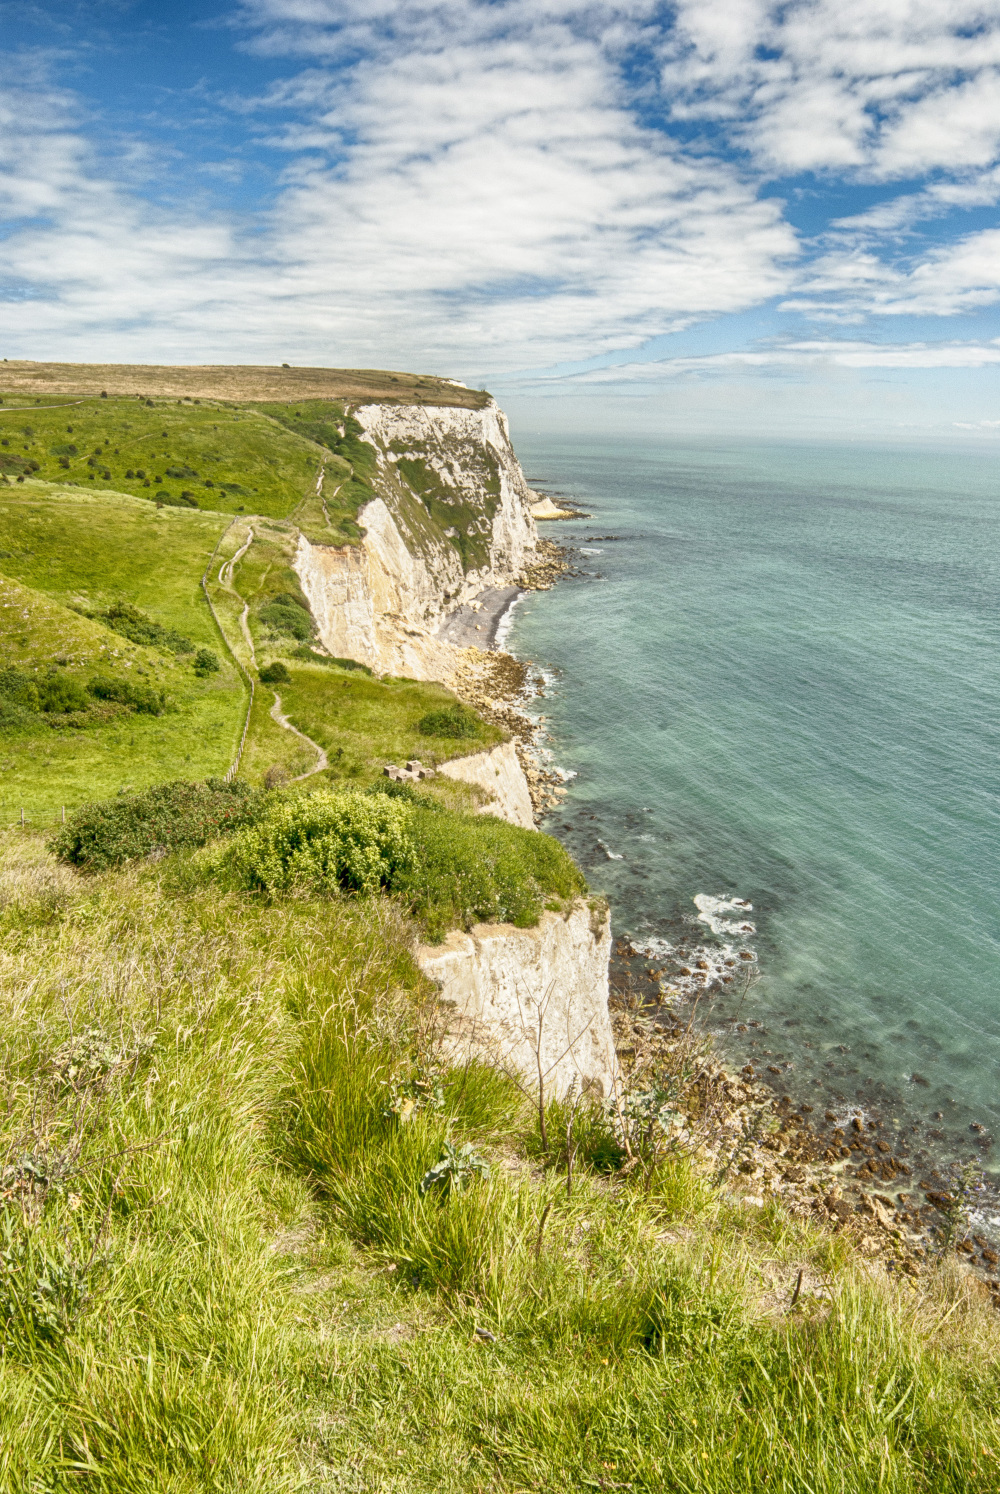 The cliffs of Dover